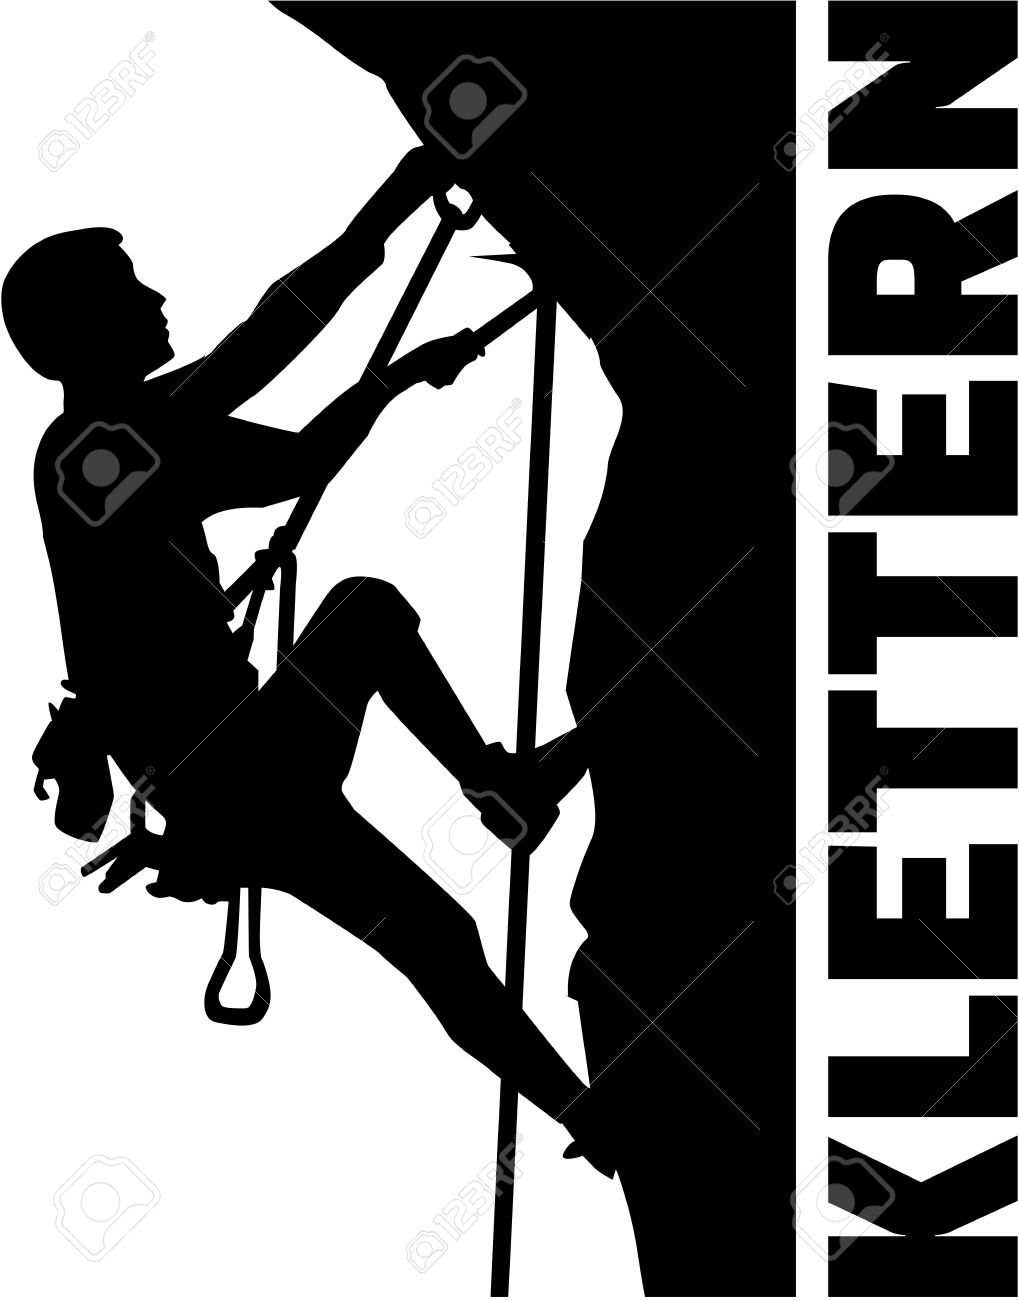 Extreme Climbing clipart #18, Download drawings